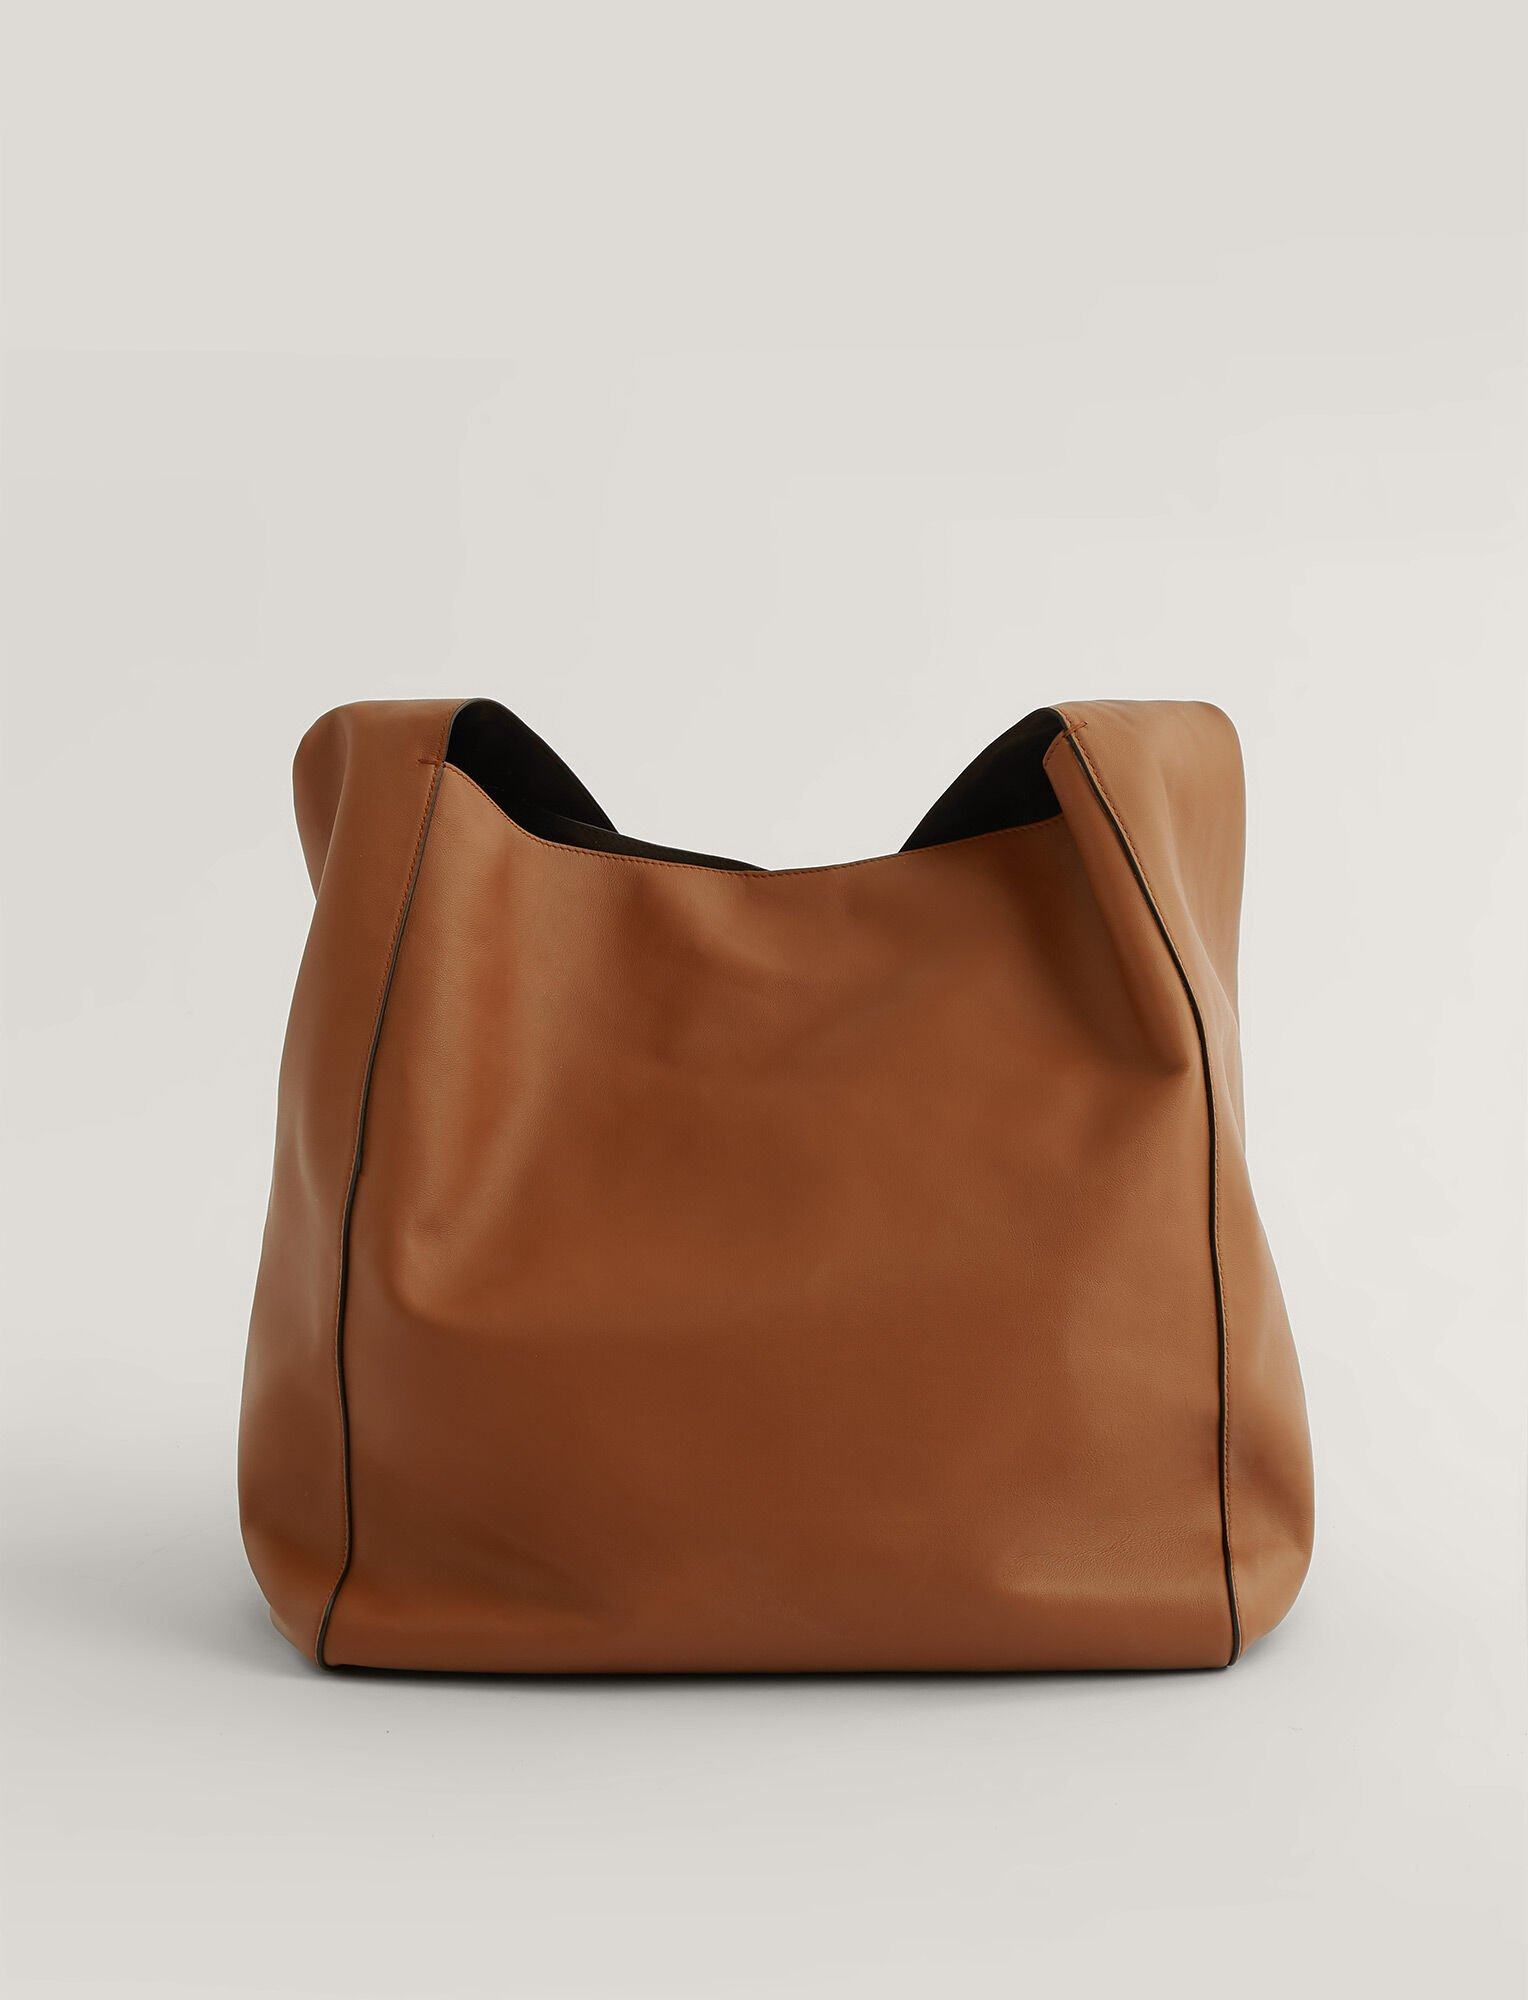 Joseph, Slouch XL Bag, in RUST